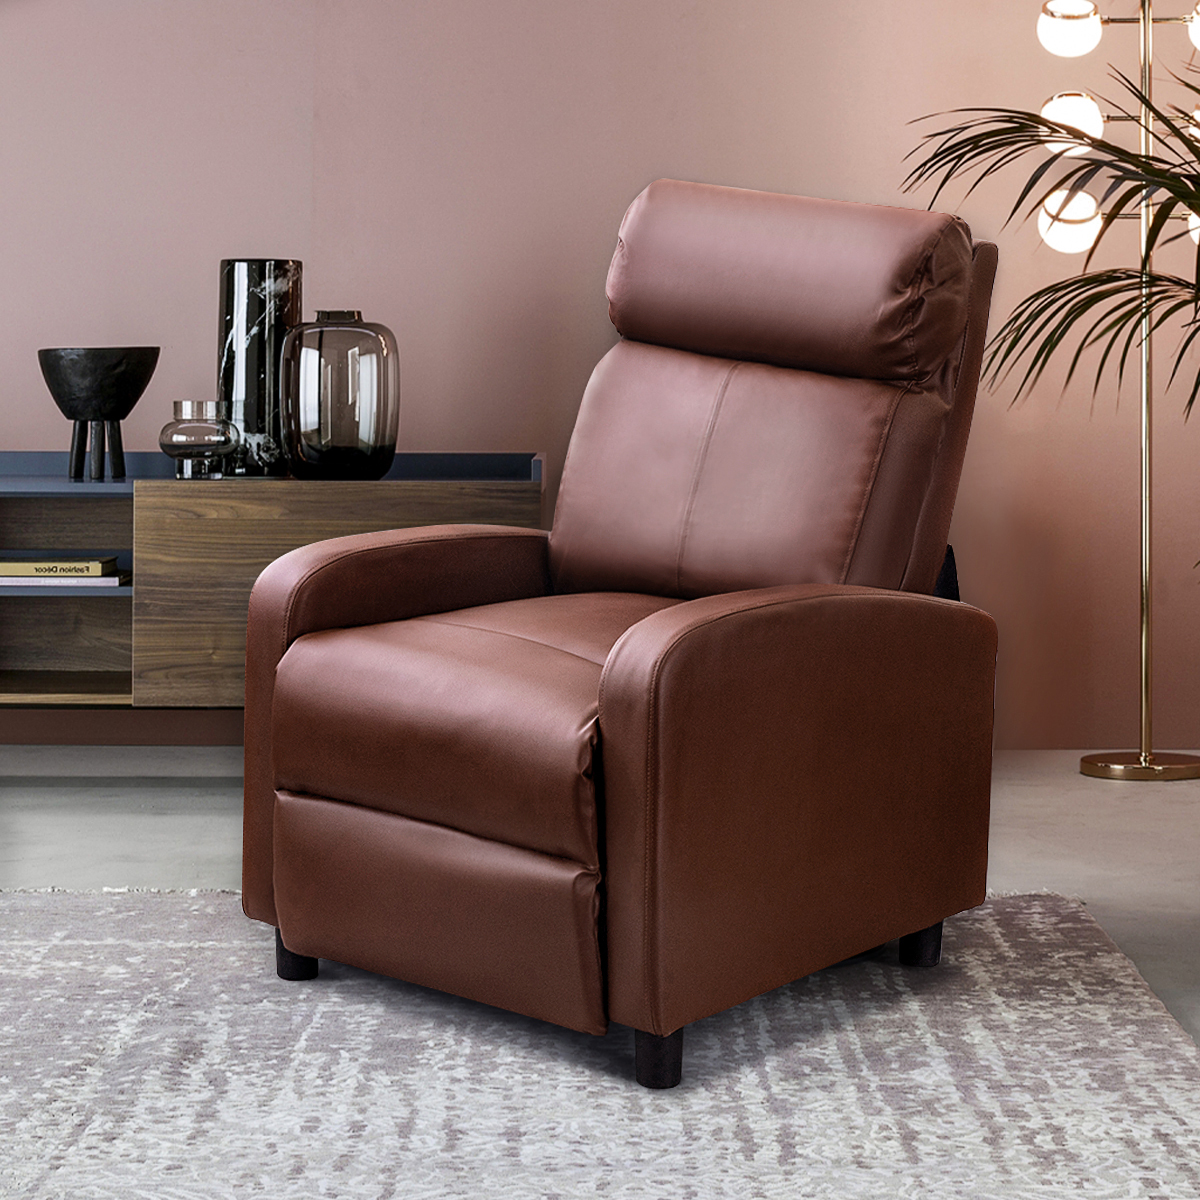 Picture of: Recliner Chair Leather Wingback Chair Sofa For Home Living Room Bedroom Walmart Com Walmart Com